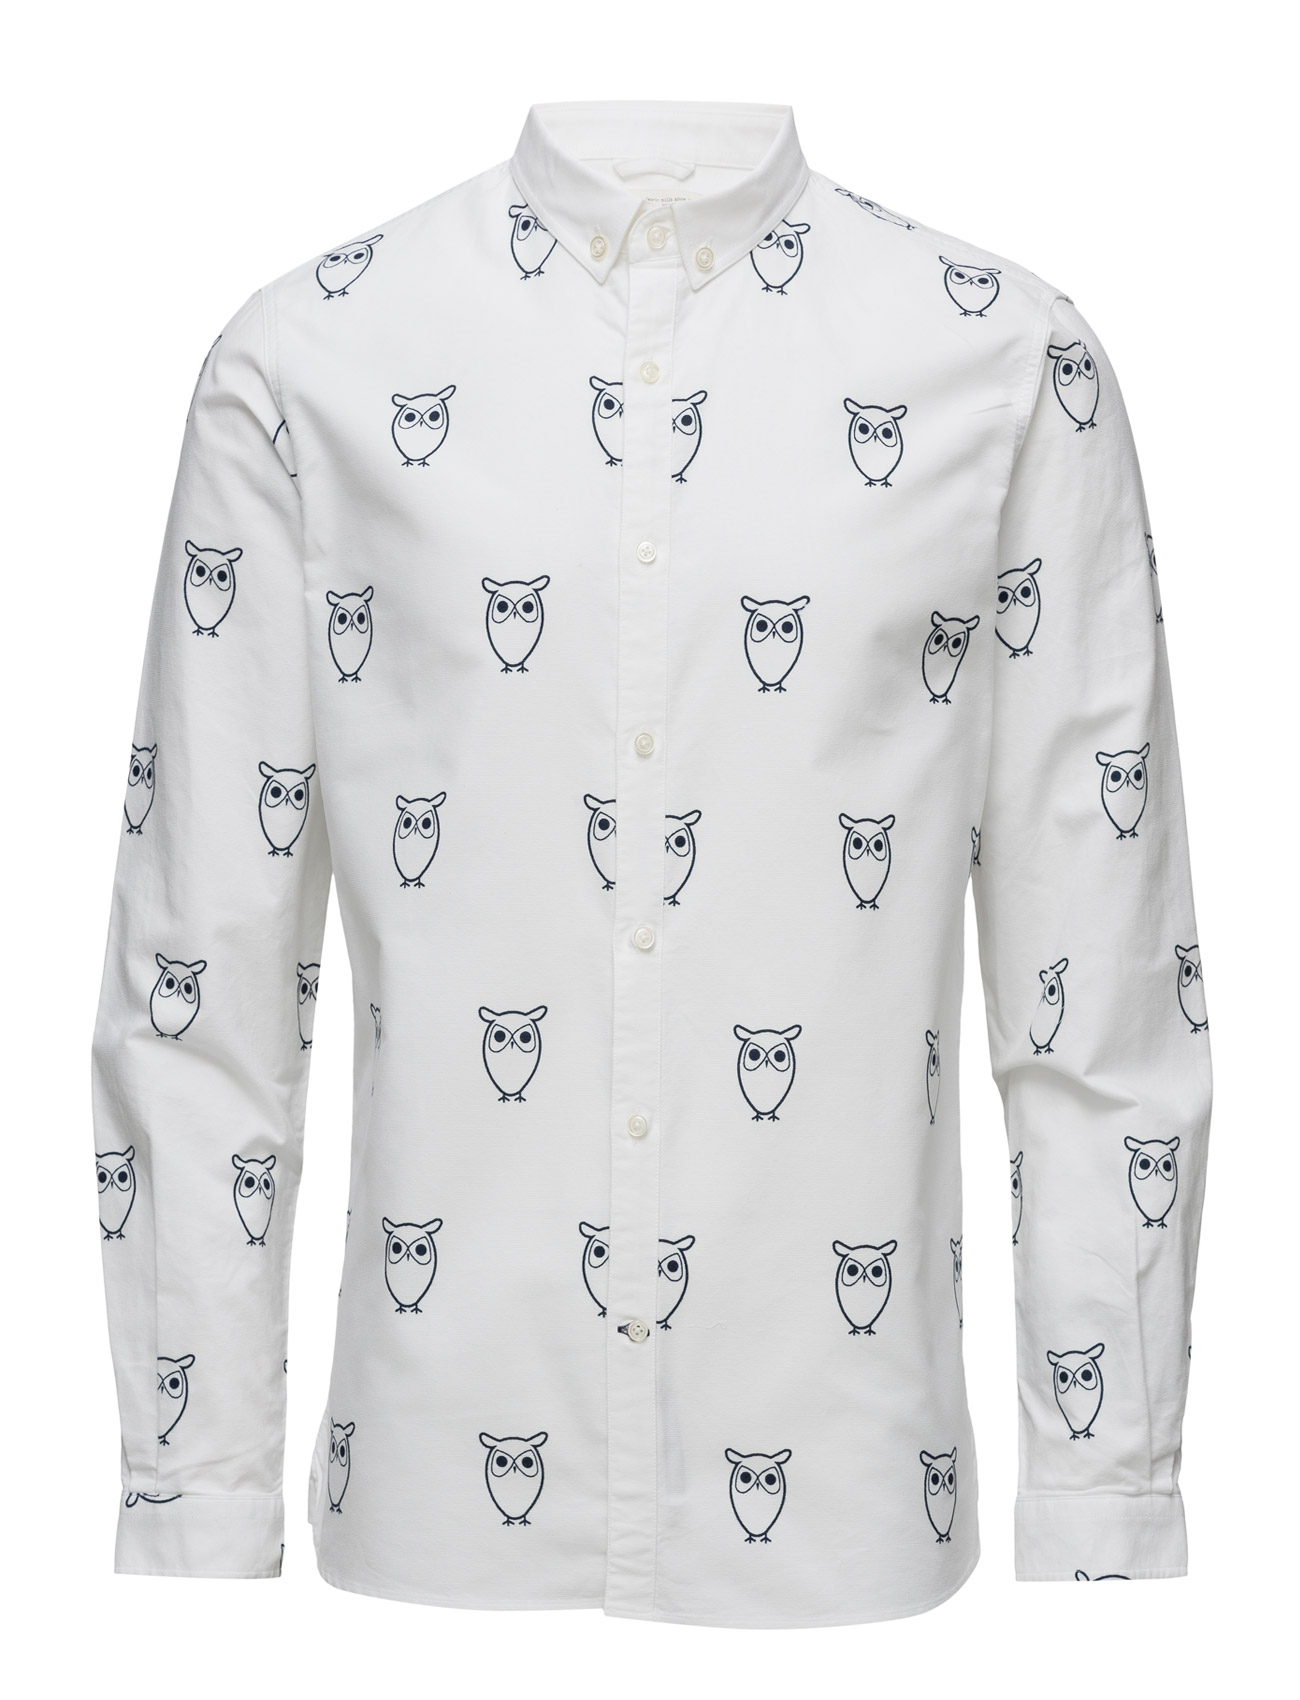 Oxford W/Owl Print L/S - Gots Knowledge Cotton Apparel Casual sko til Herrer i Bright White